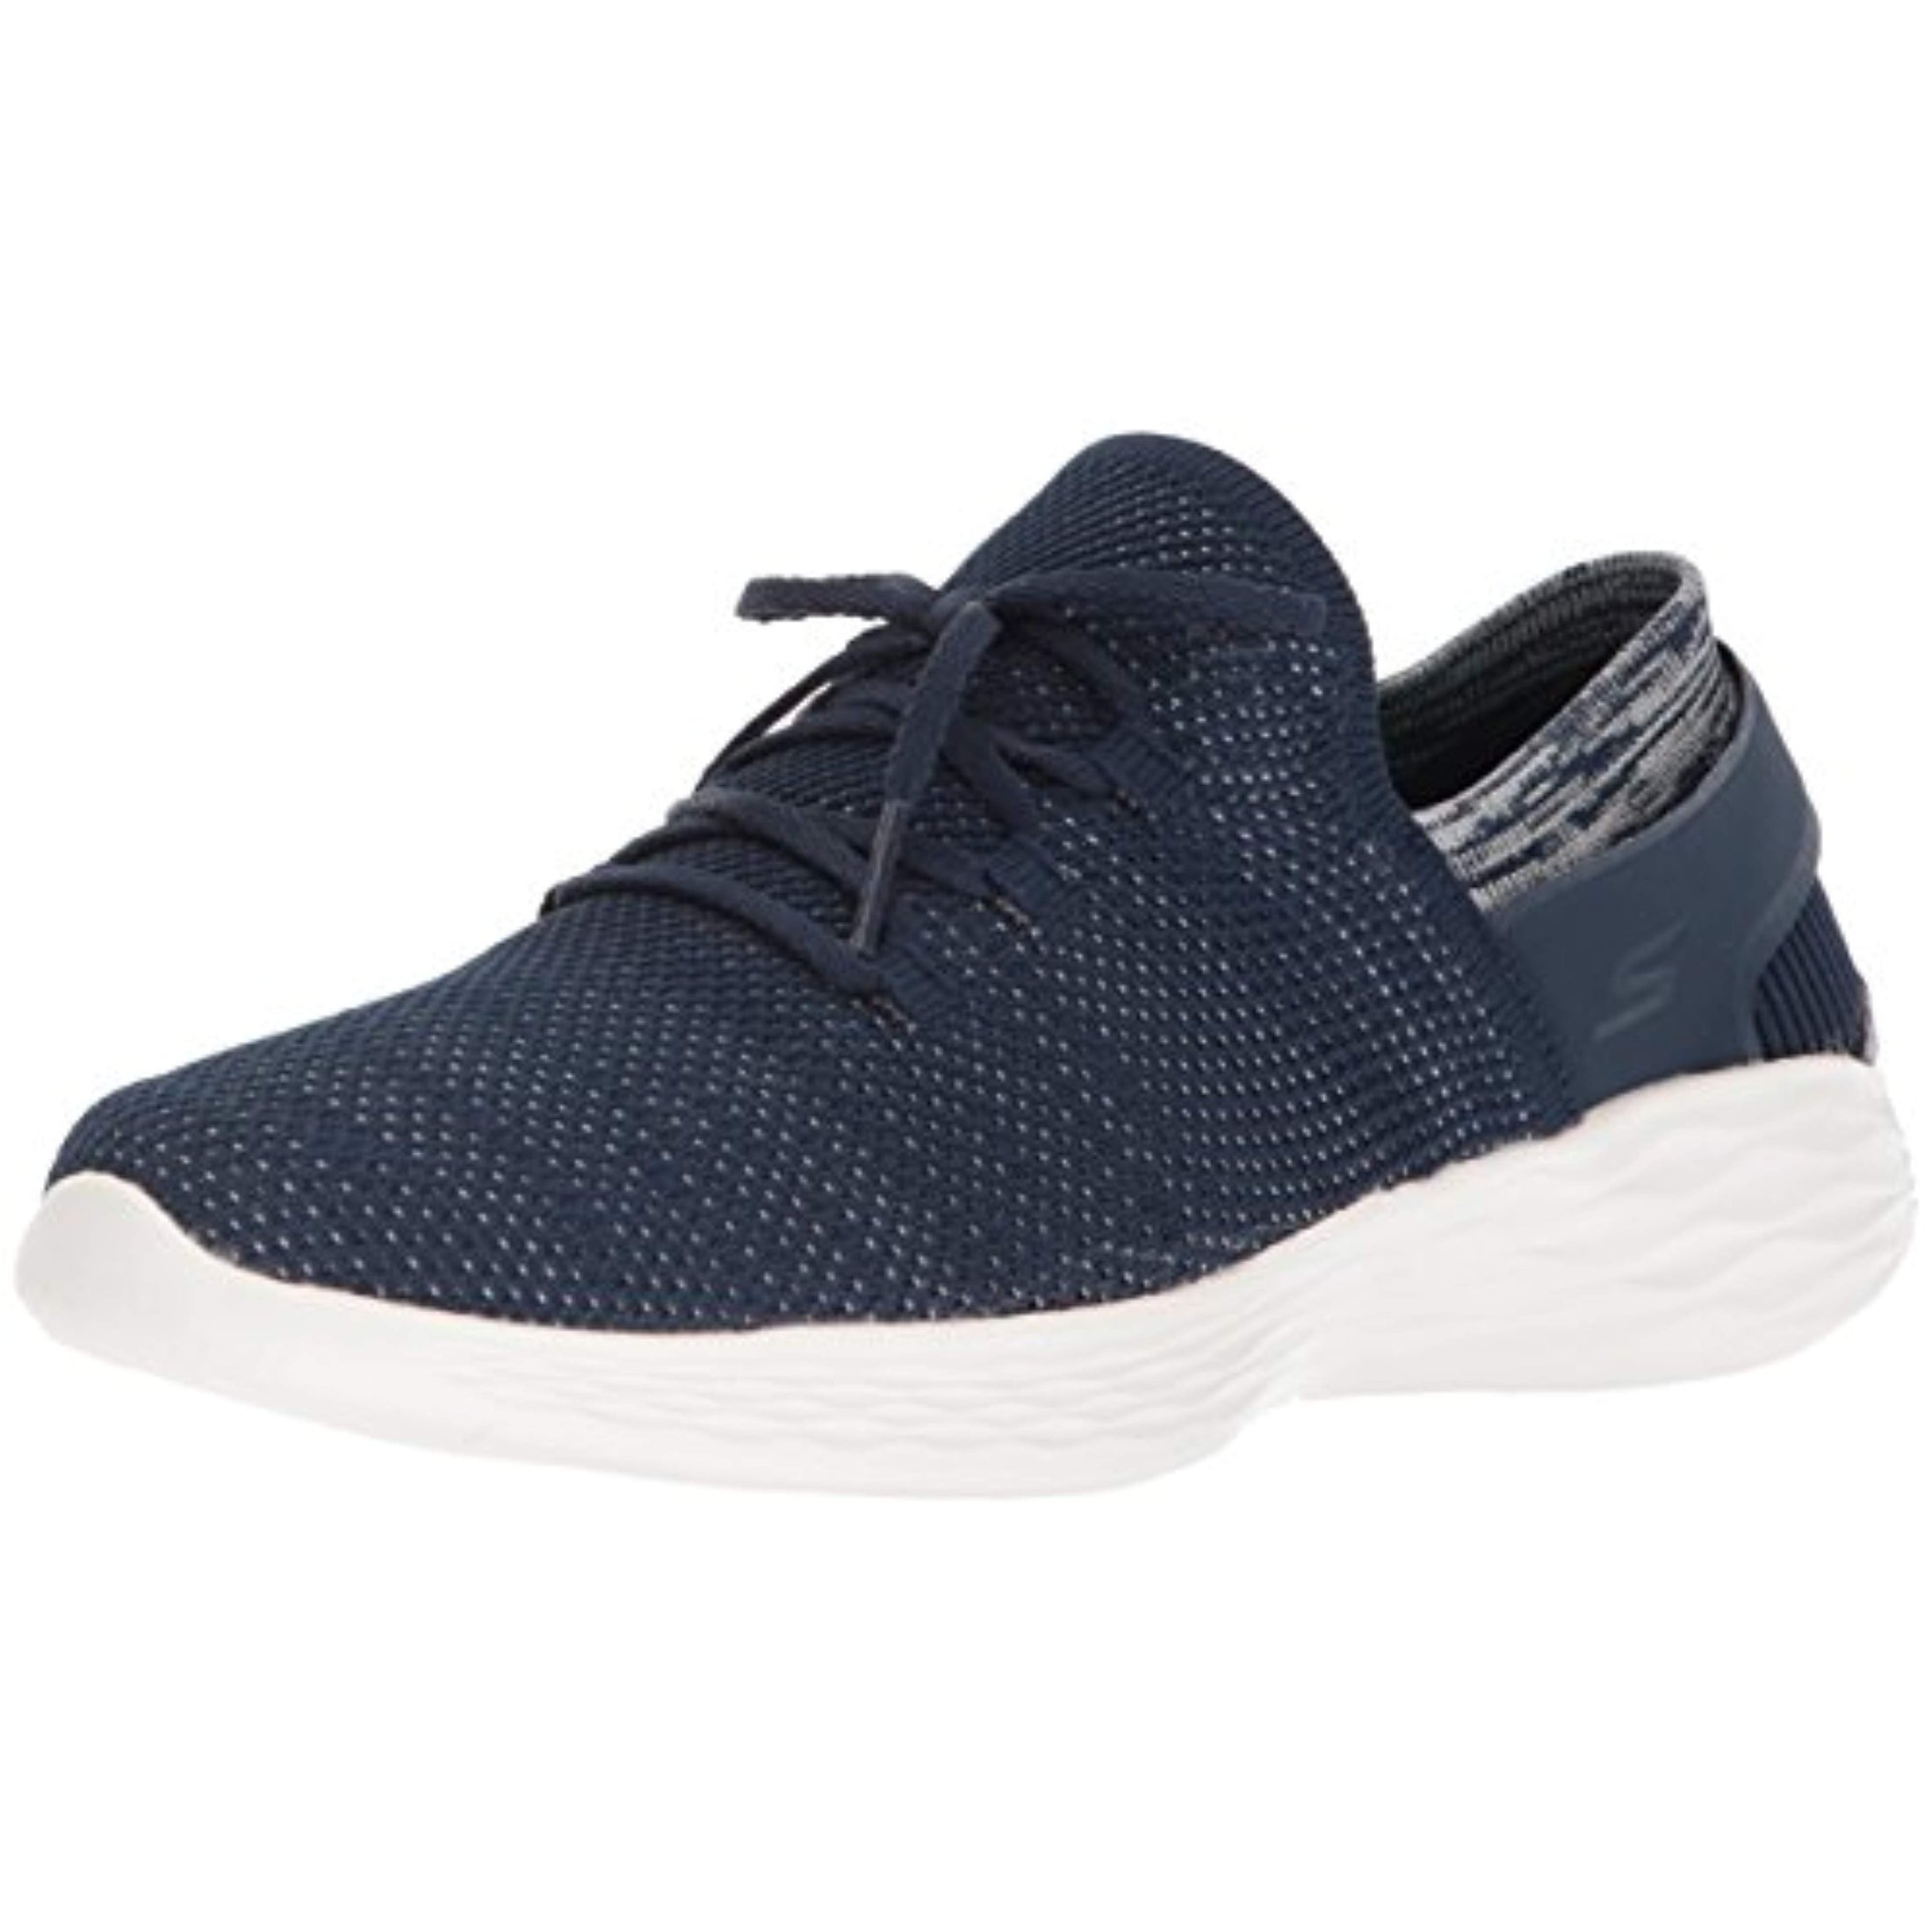 19bd0239d65f Shop Skechers Performance Women s You-14960 Sneaker - Free Shipping Today -  Overstock - 27122486